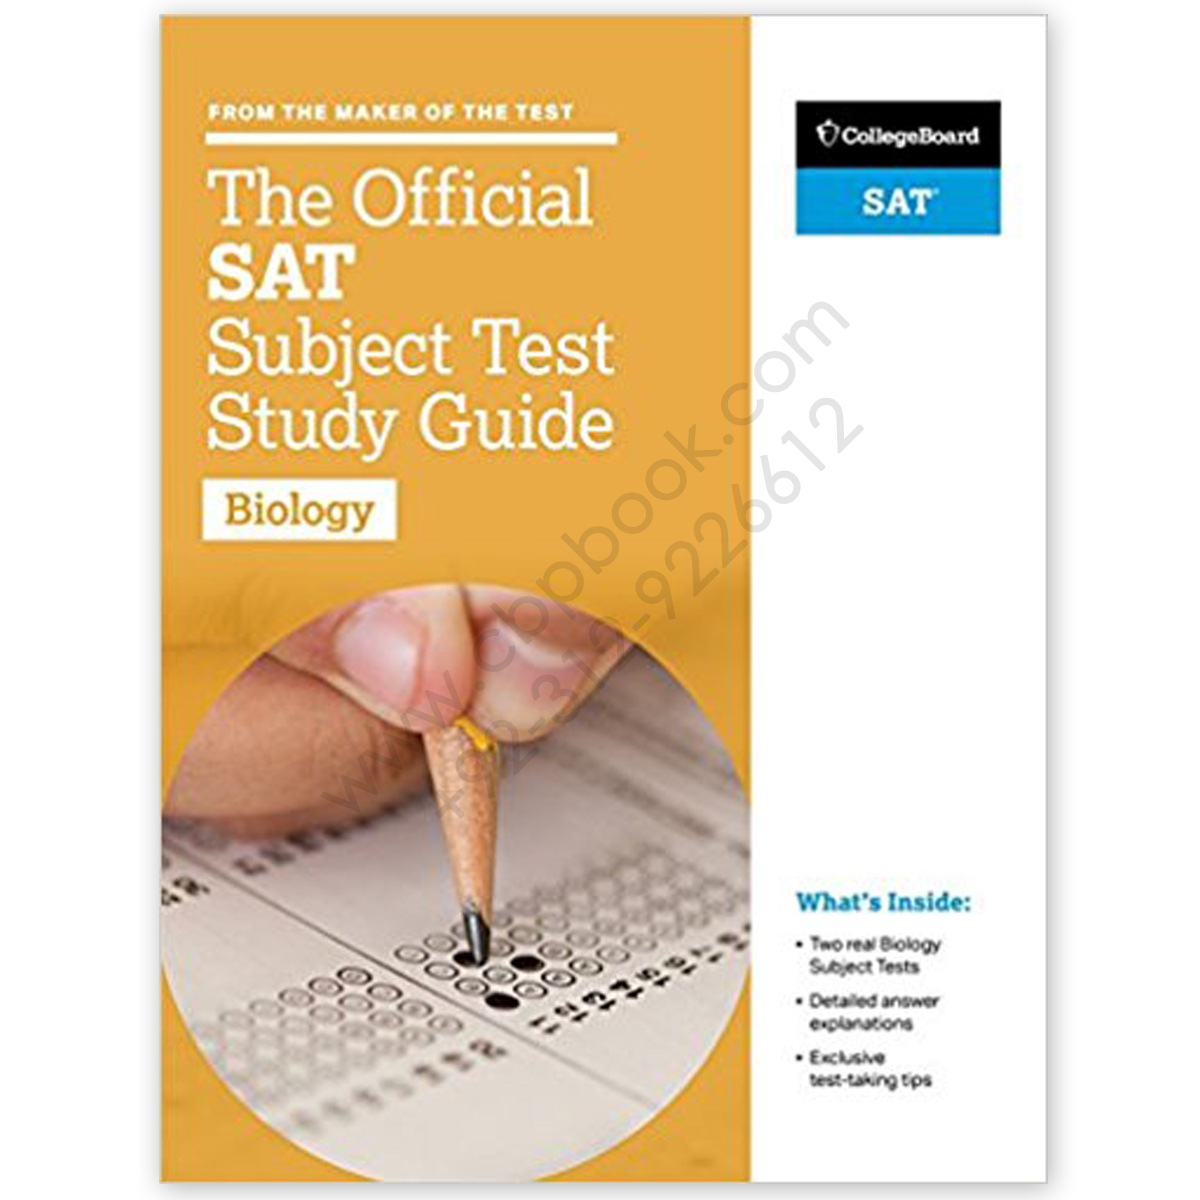 The Ultimate SAT Biology Subject Test Study Guide